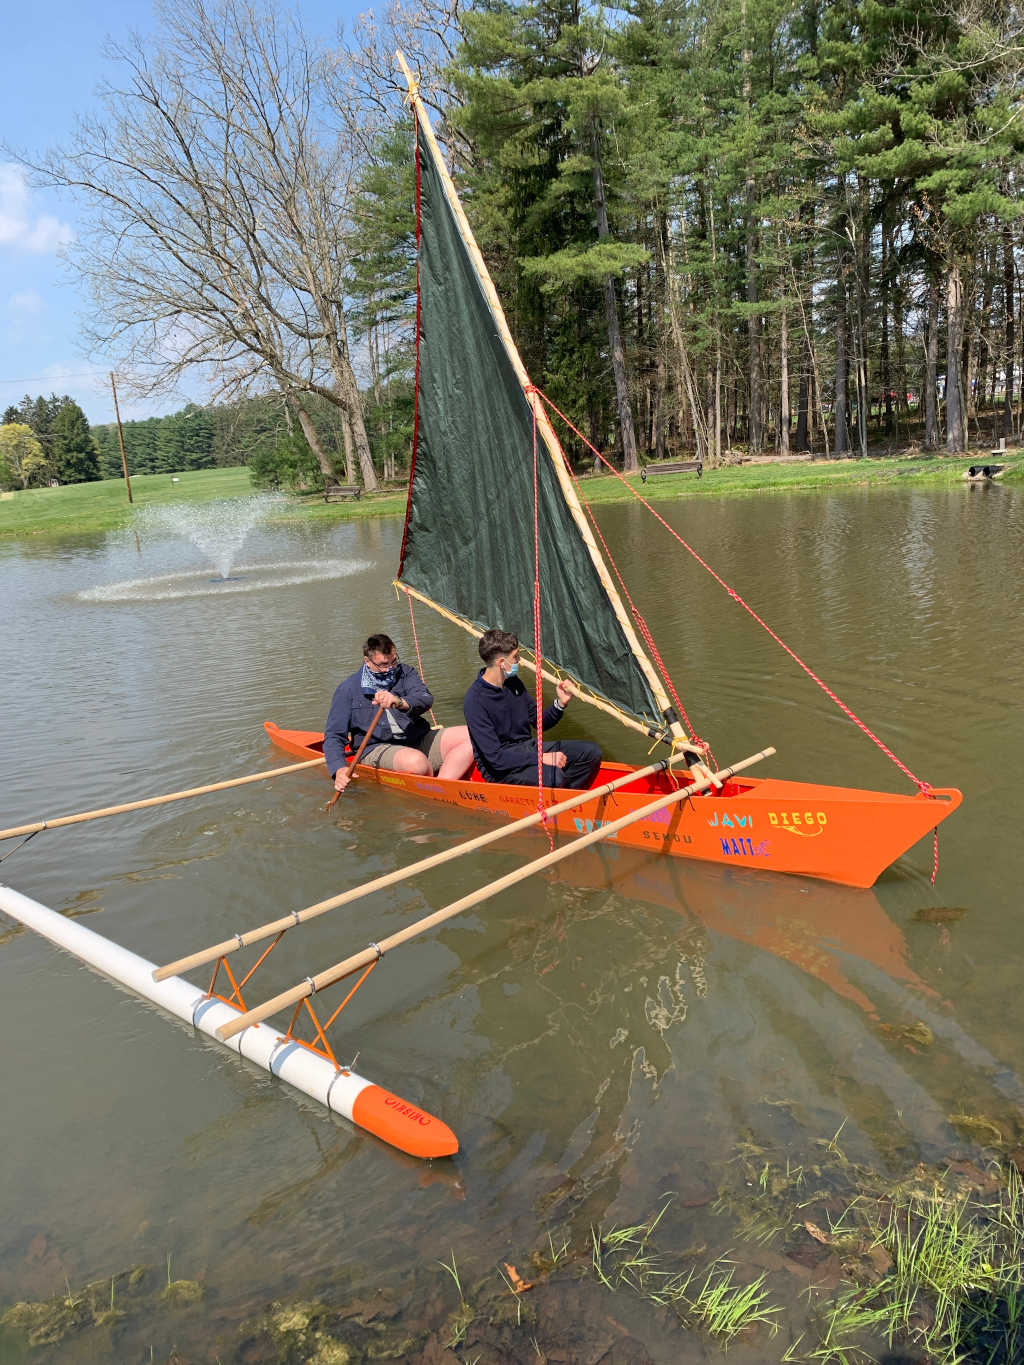 Outrigger canoe on the pond, crewed by two